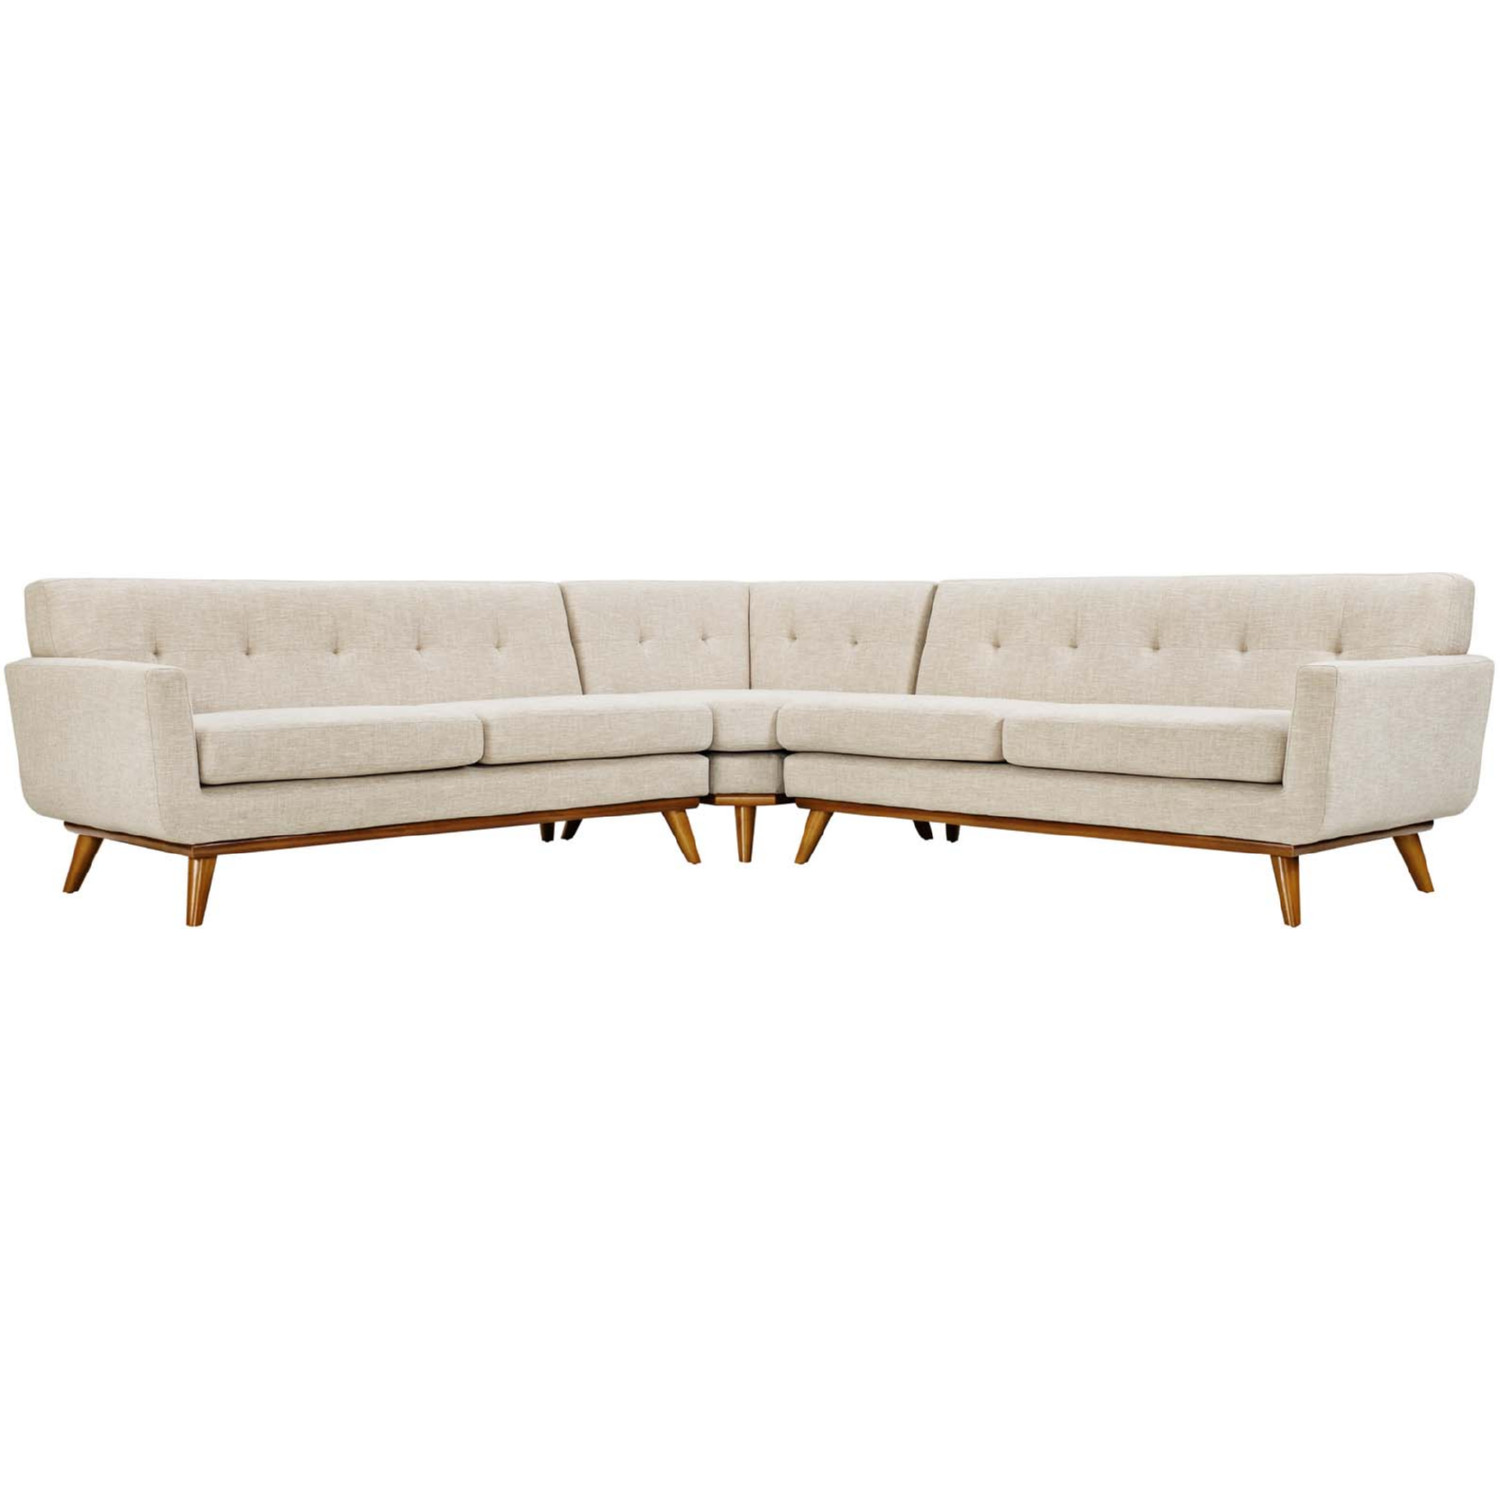 Engage L Shaped Sectional Sofa In Tufted Beige Fabric By Modway